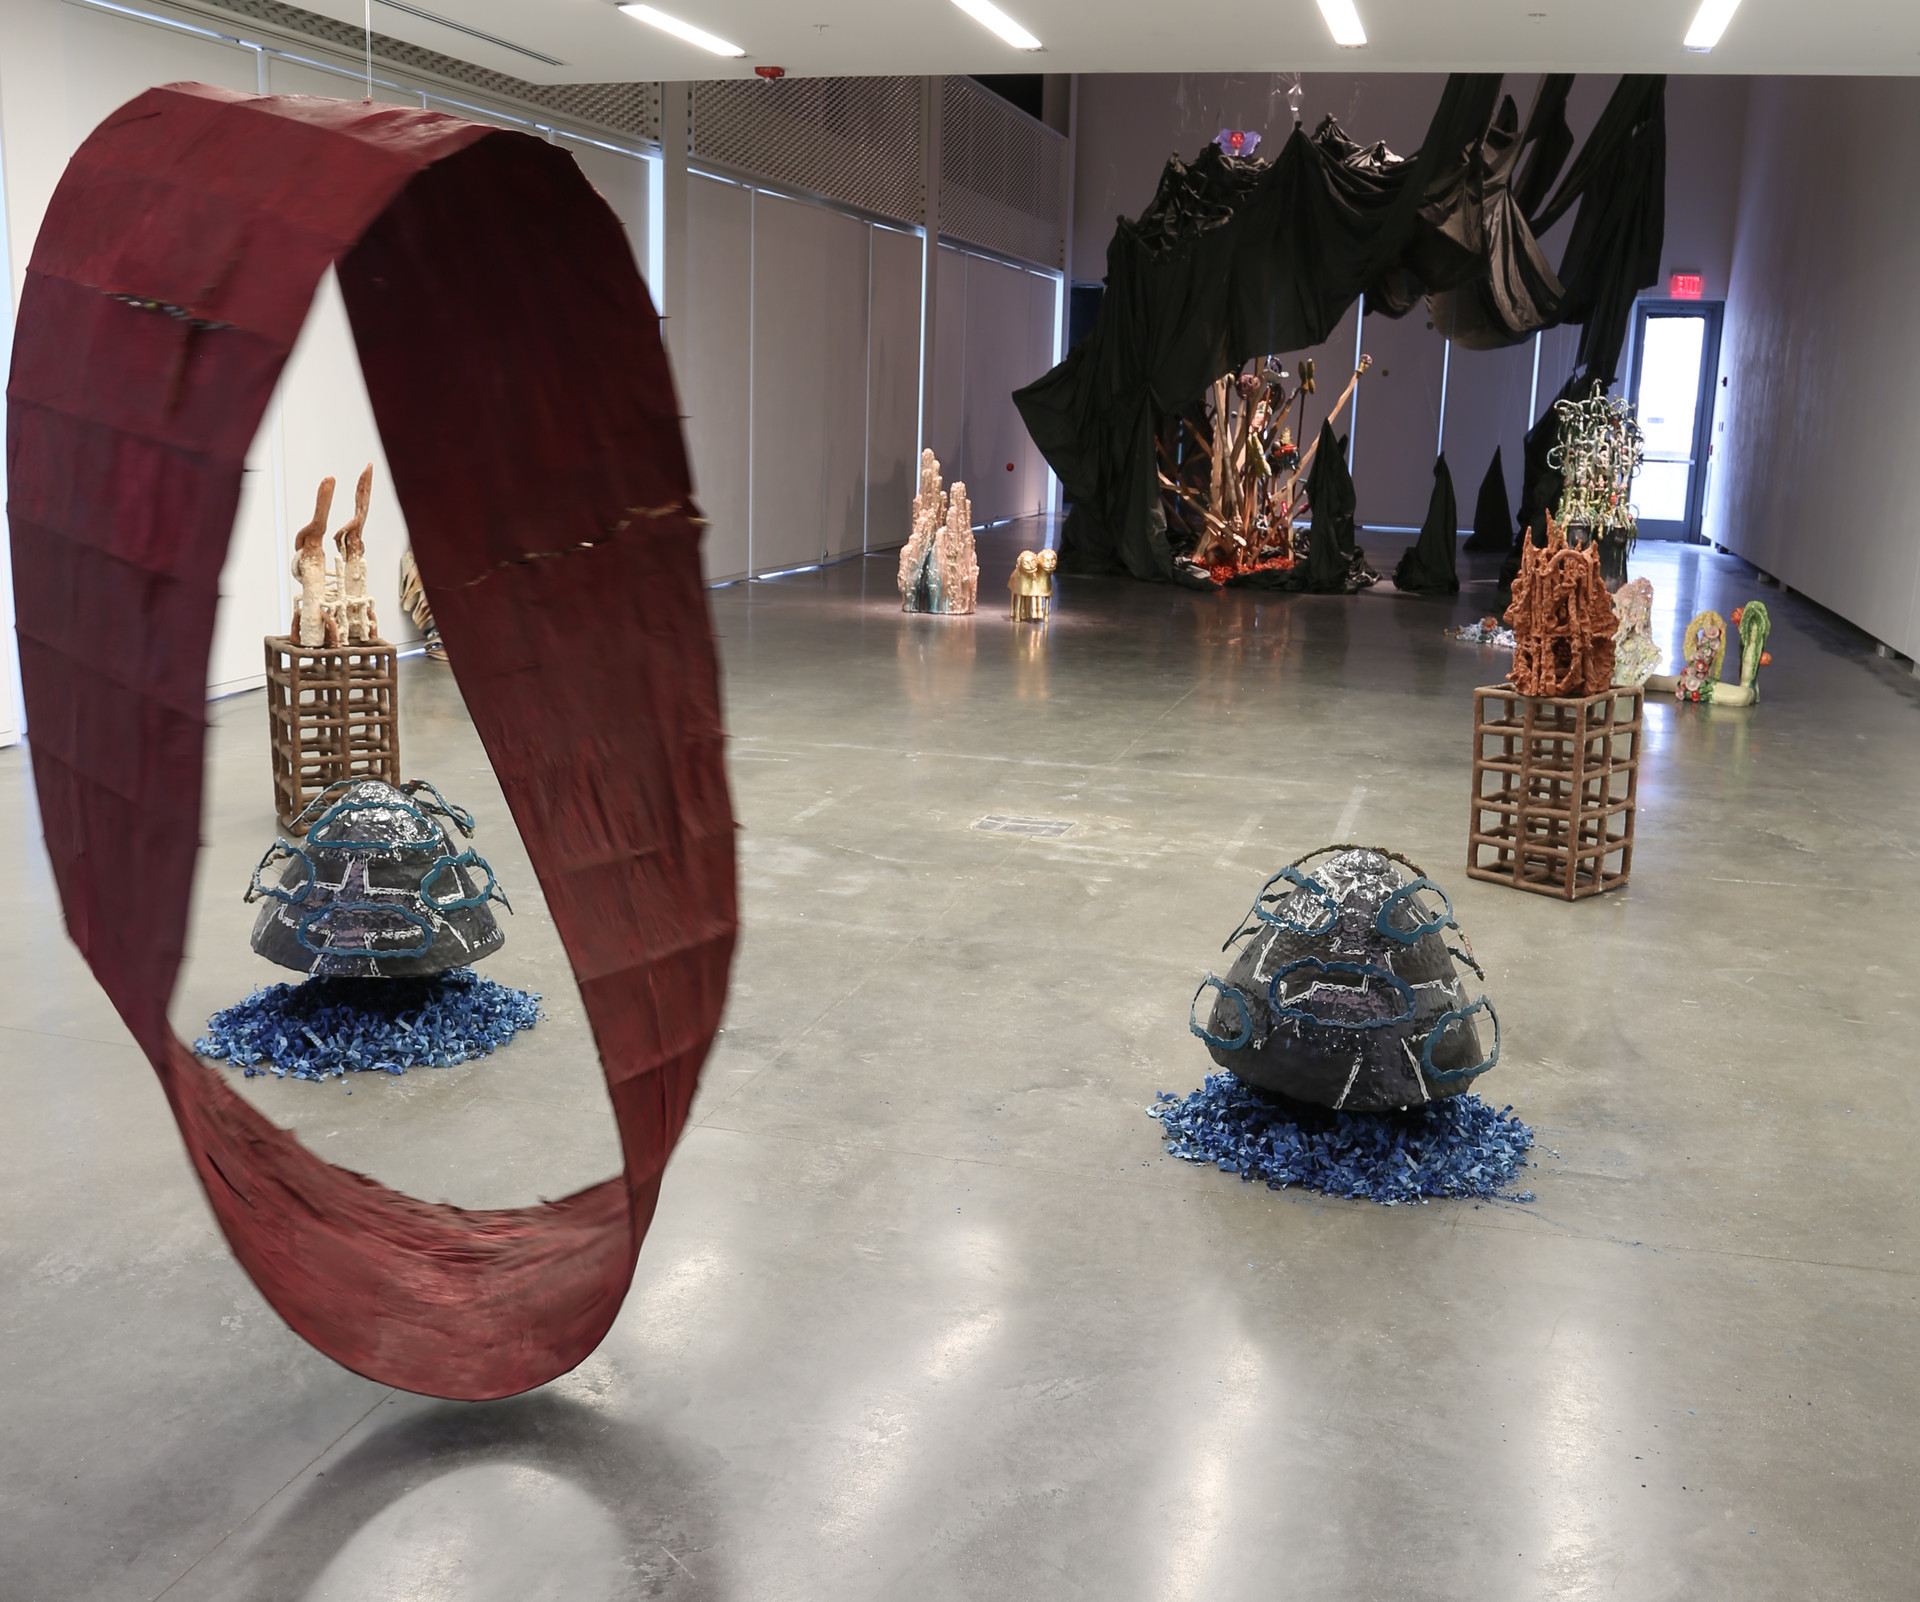 Installation View with Mobius Loop